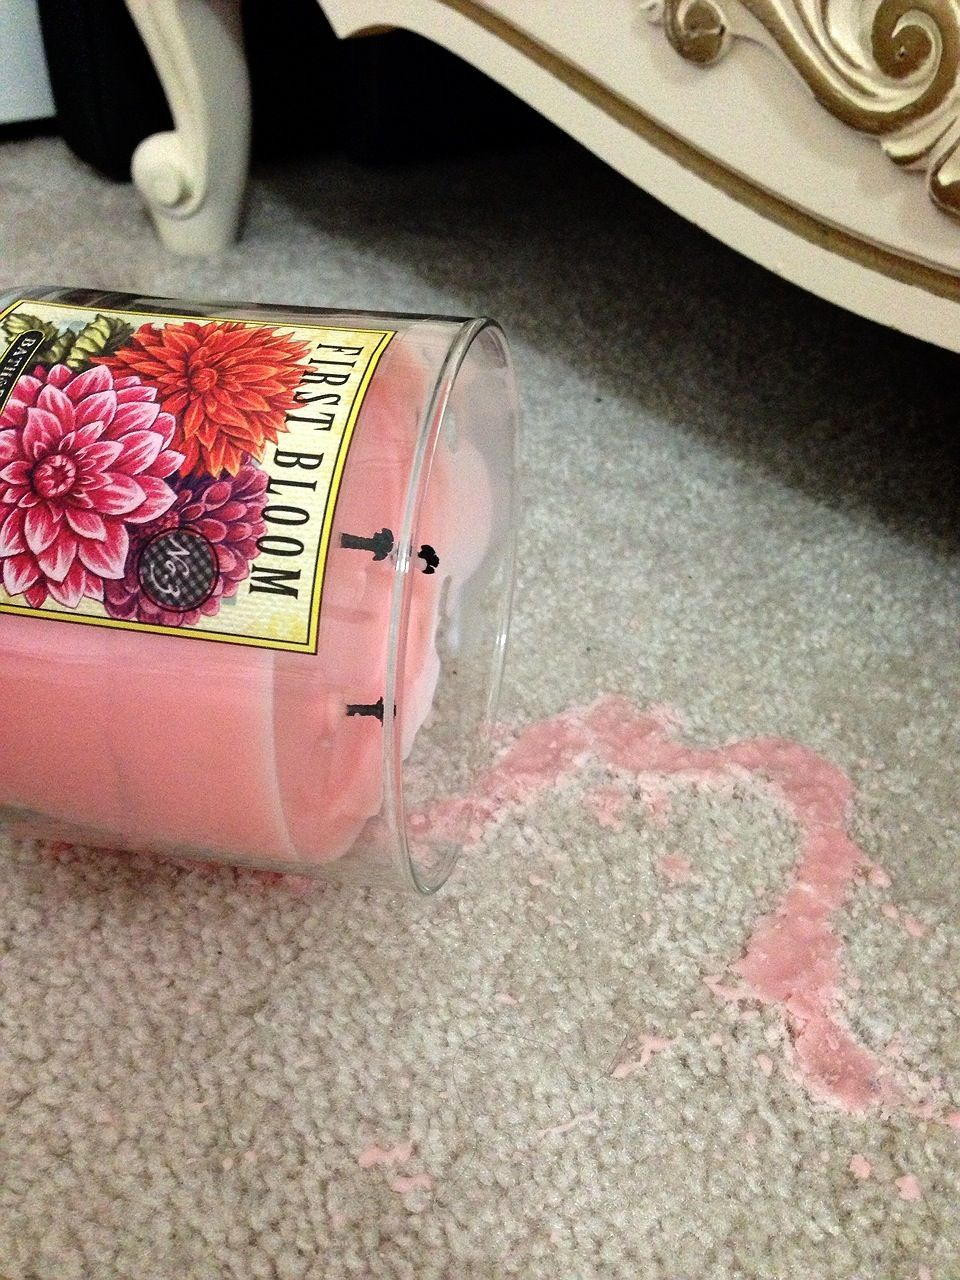 How to clean candle wax off your carpet recipe